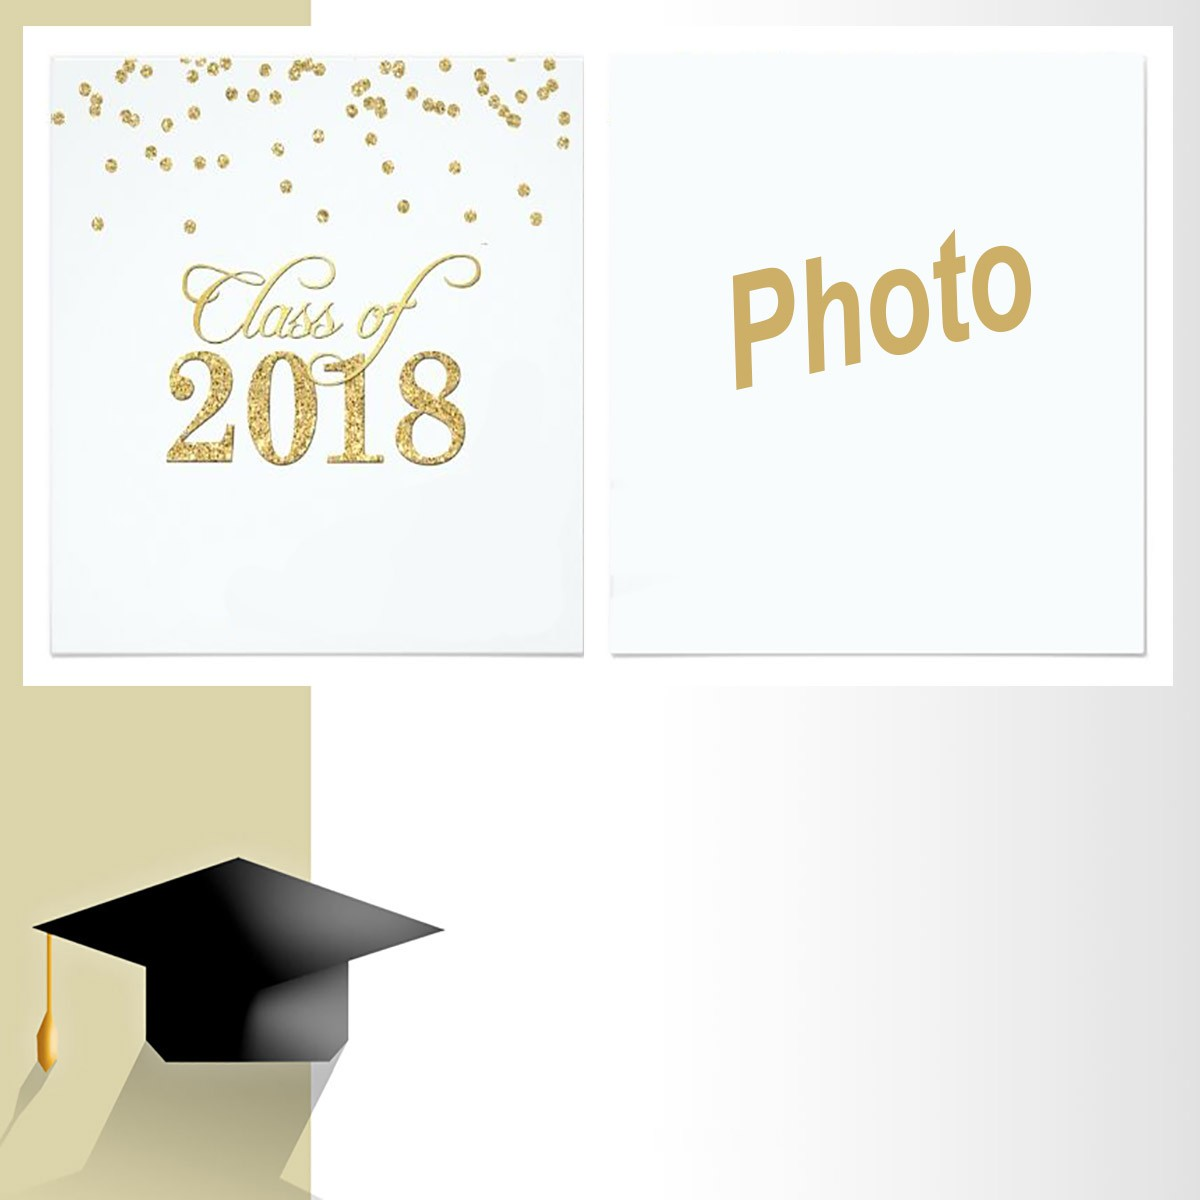 photograph regarding Free Printable Graduation Invitations referred to as Invites On the internet Free of charge Printable Invitation Templates